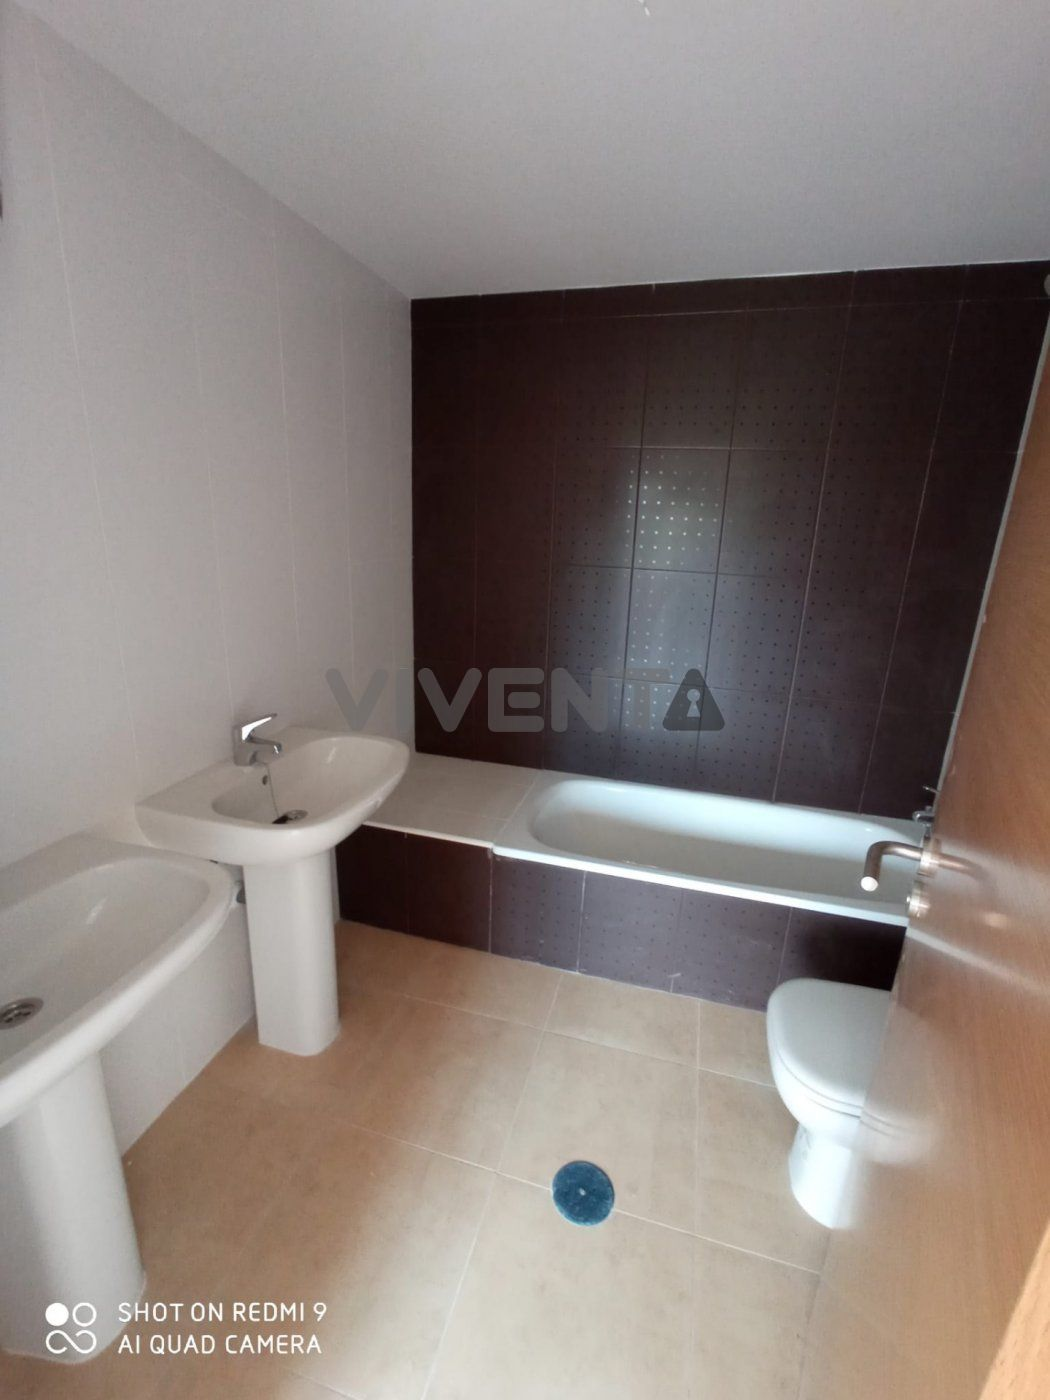 Apartamento · Torre - Pacheco · Mar Menor Resort 69.900€€